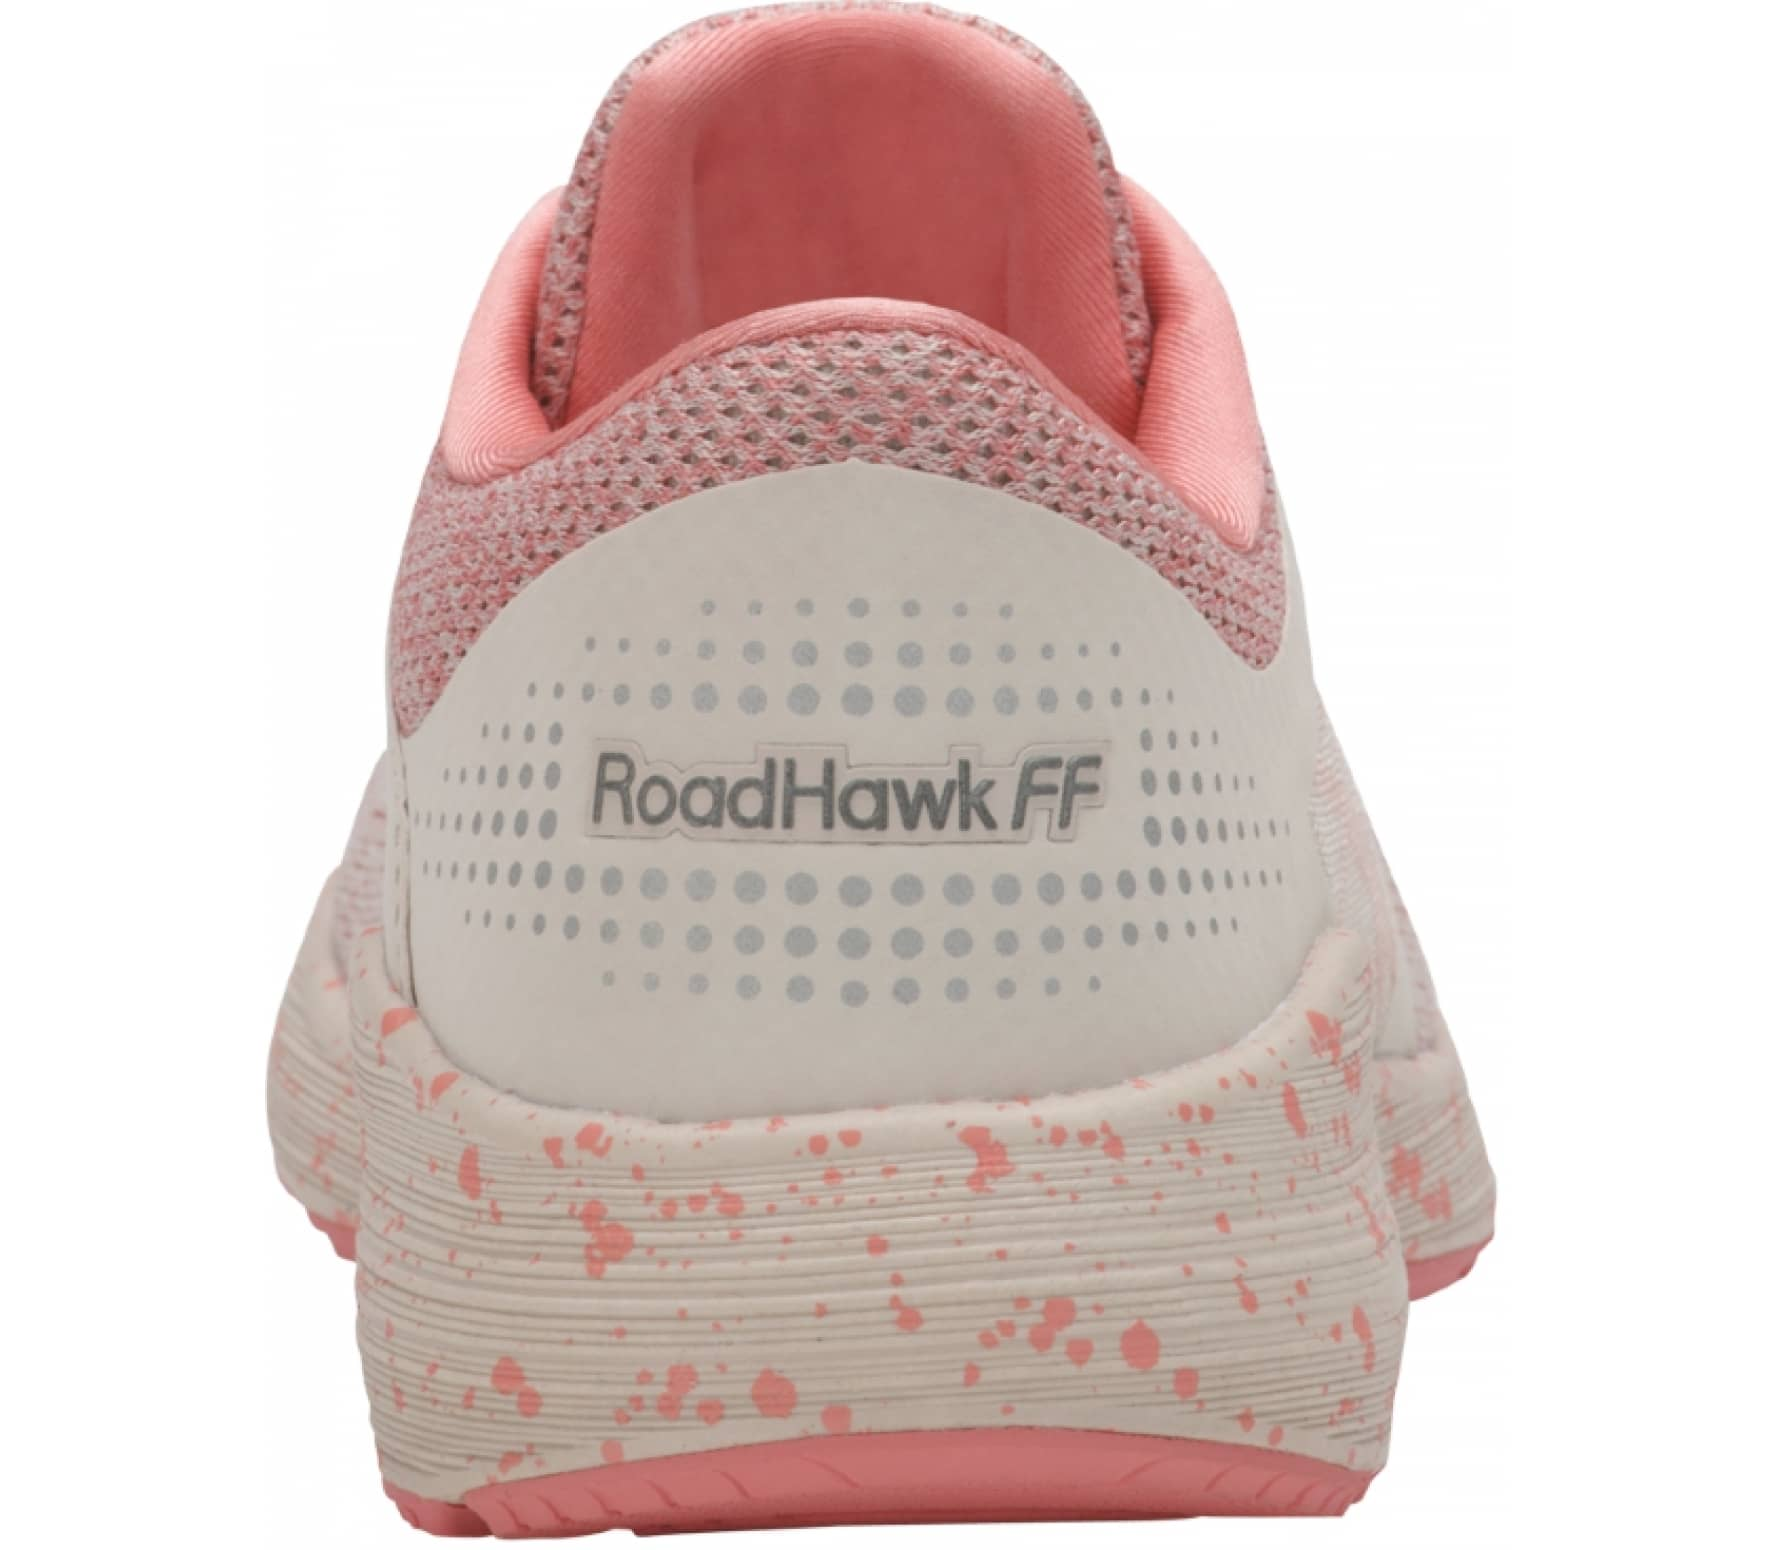 ASICS RoadHawk FF SP Women